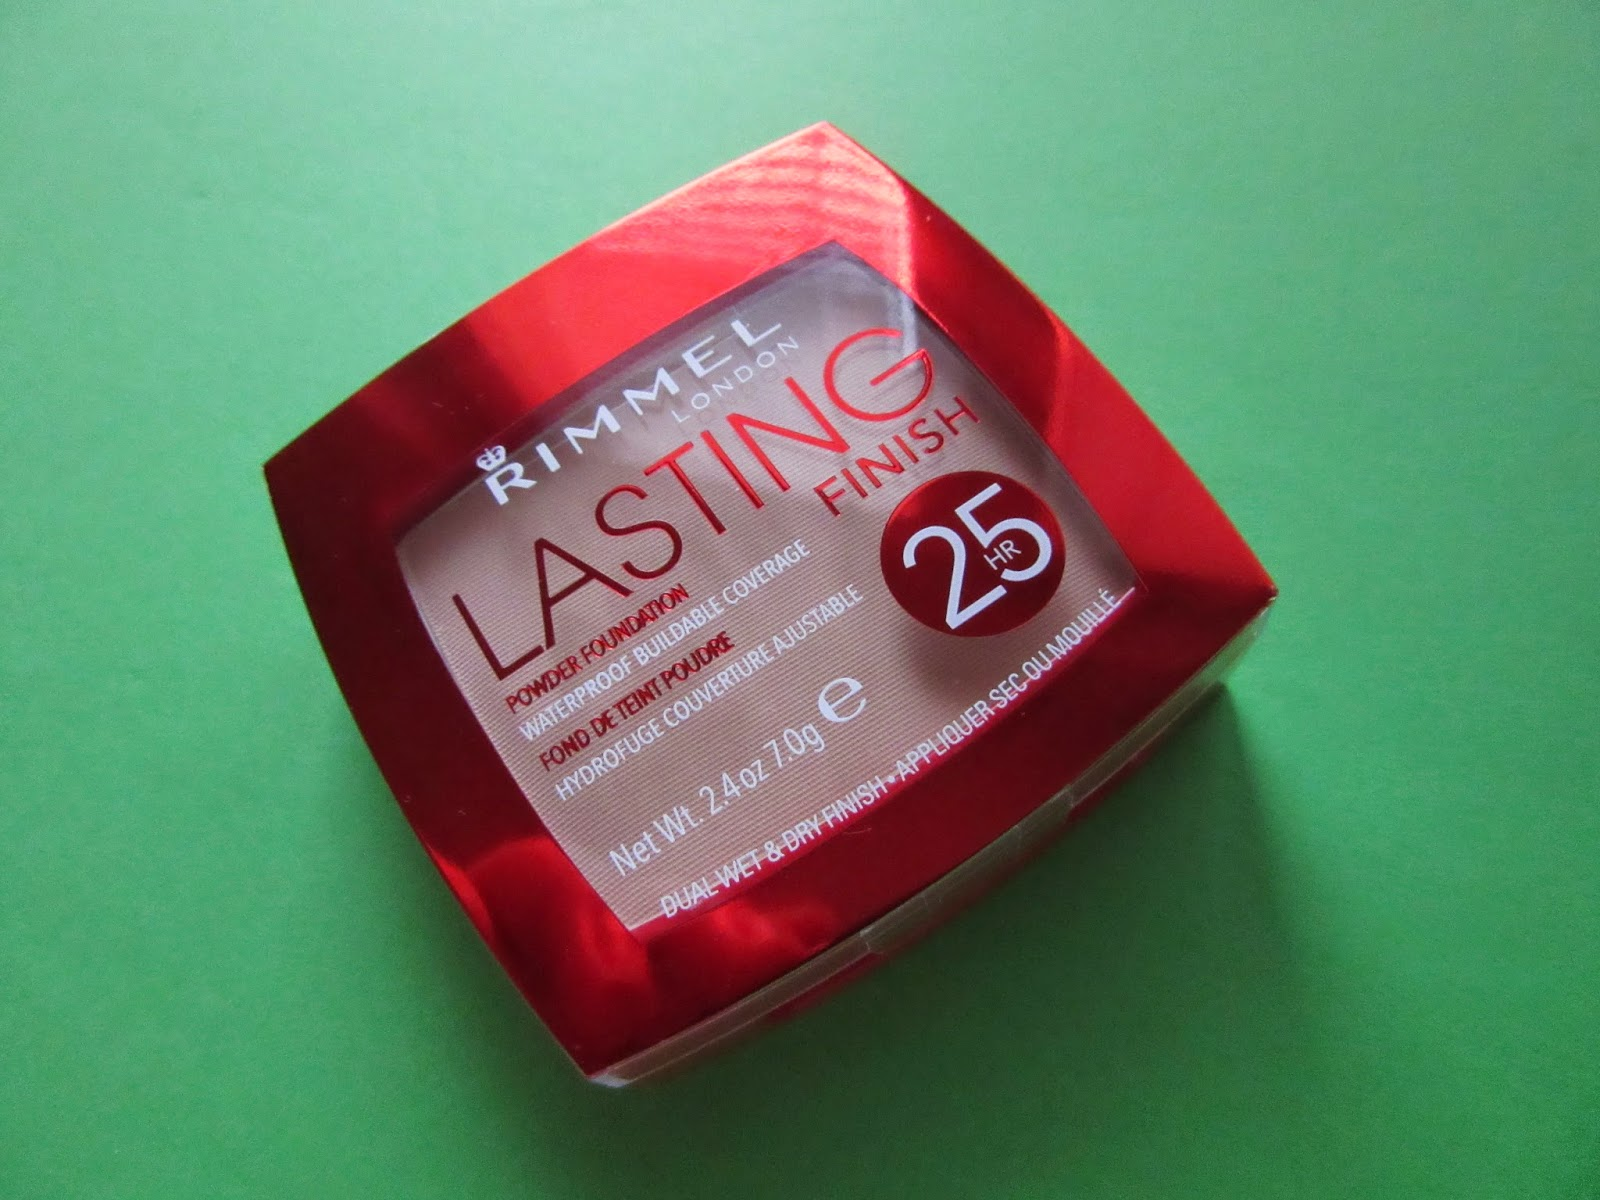 Rimmel: Lasting Finish 25H Powder Foundation